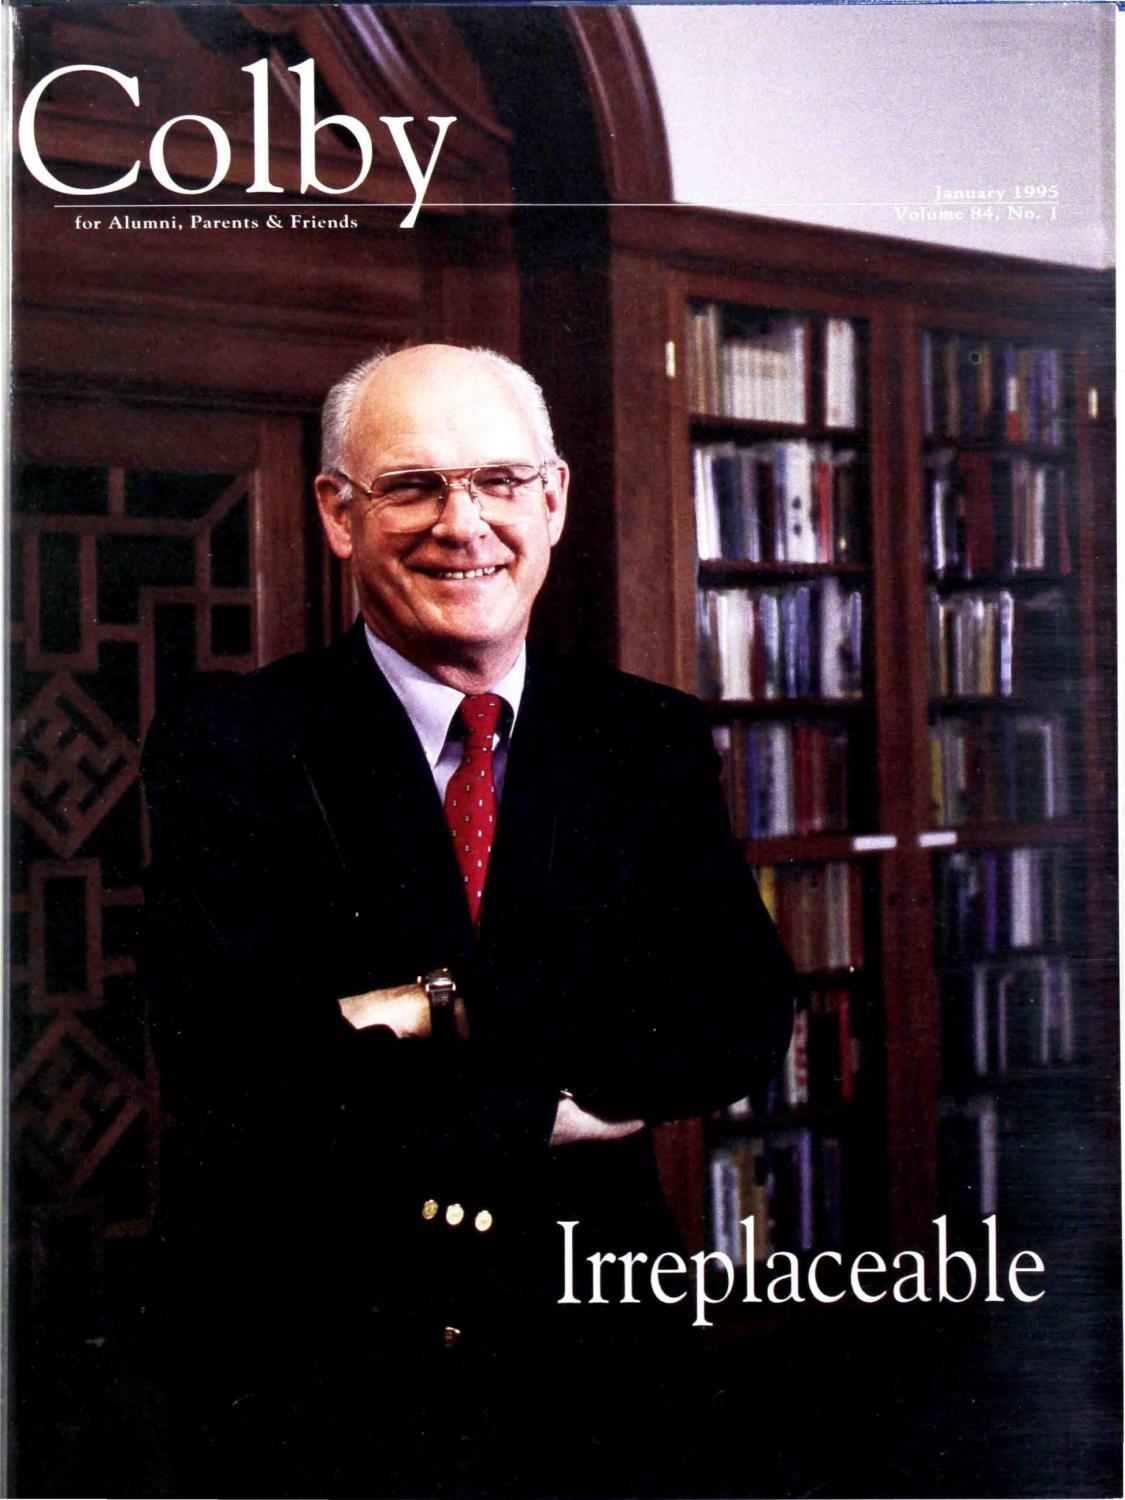 Colby Magazine vol  84, no  1 by Colby College Libraries - issuu